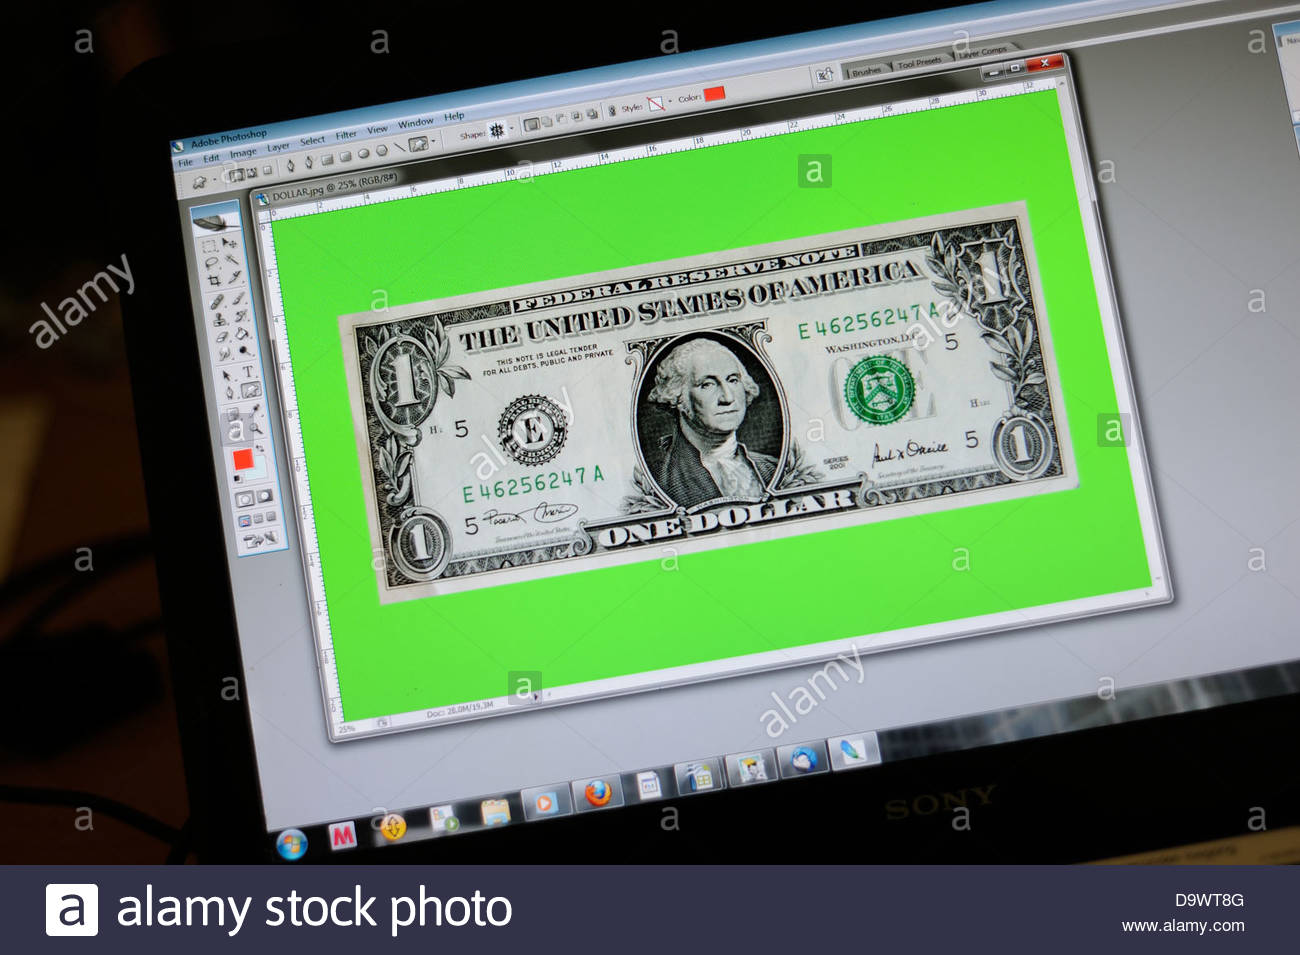 US dollar on photoshop, according to many, not possible. - Stock Image